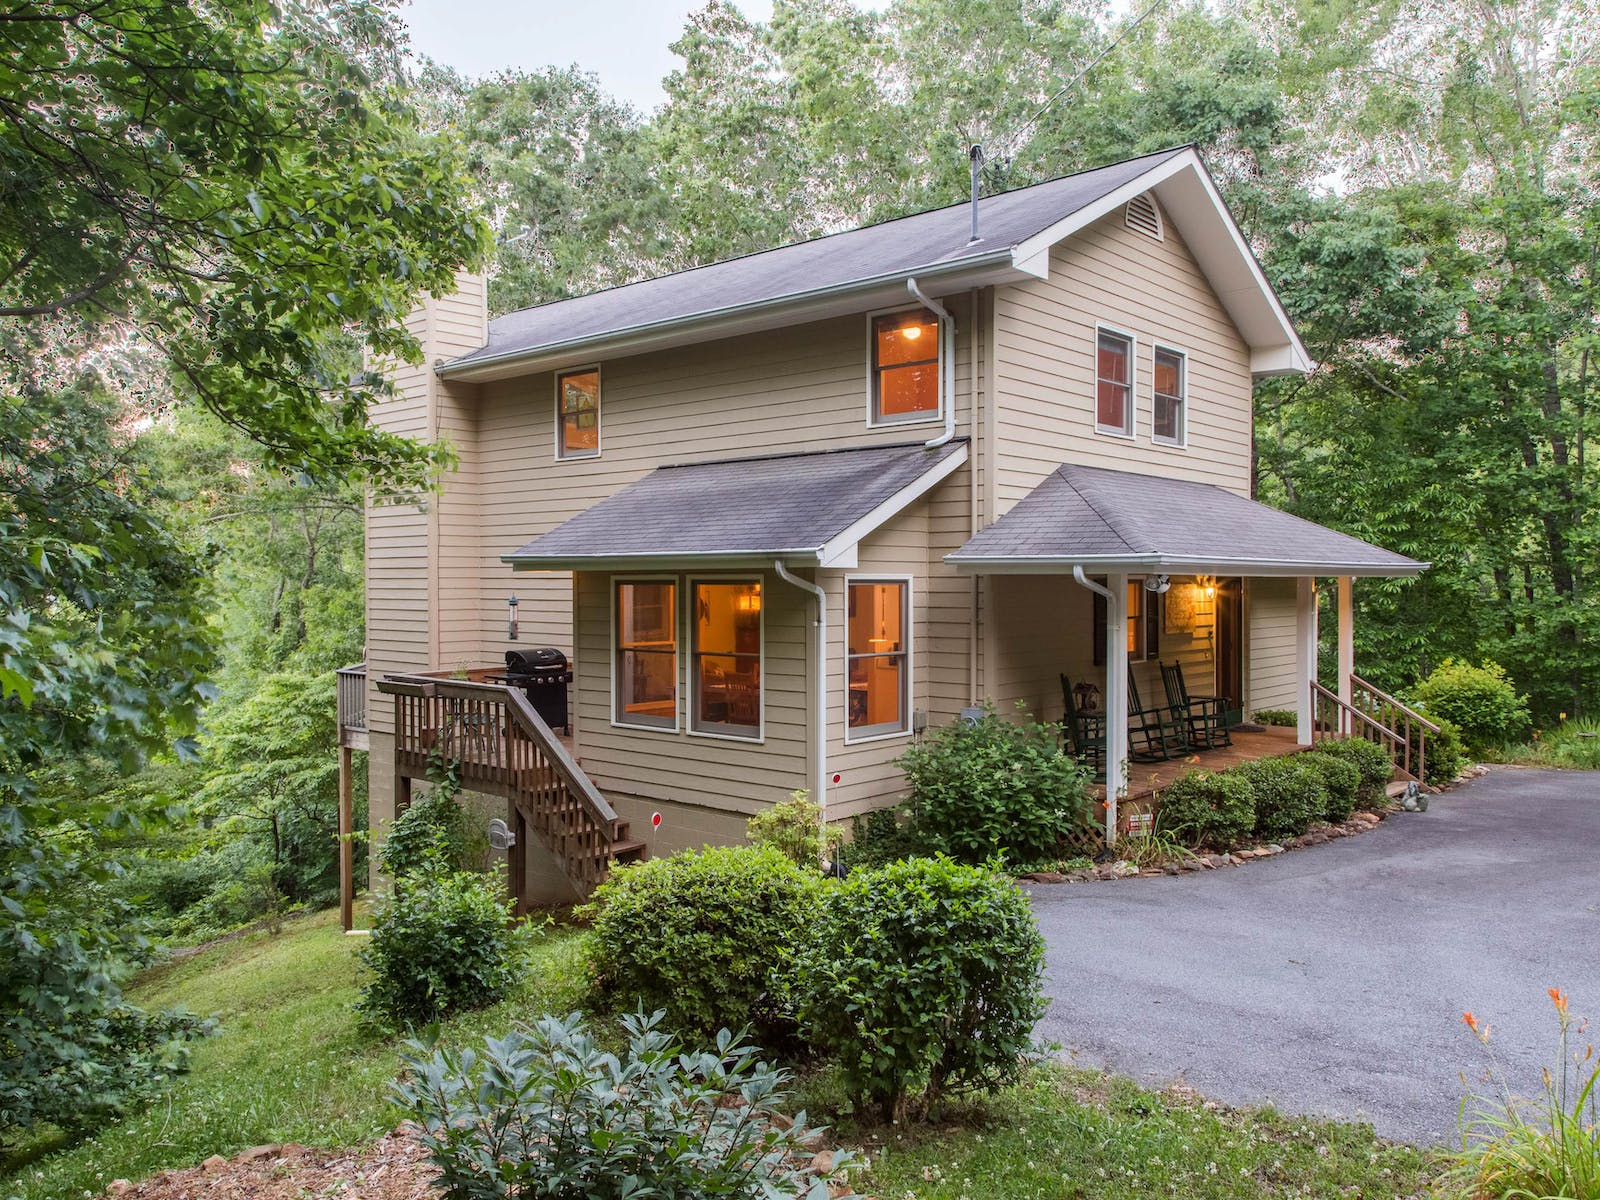 Vacation rental in Sylva, NC surrounded by woods